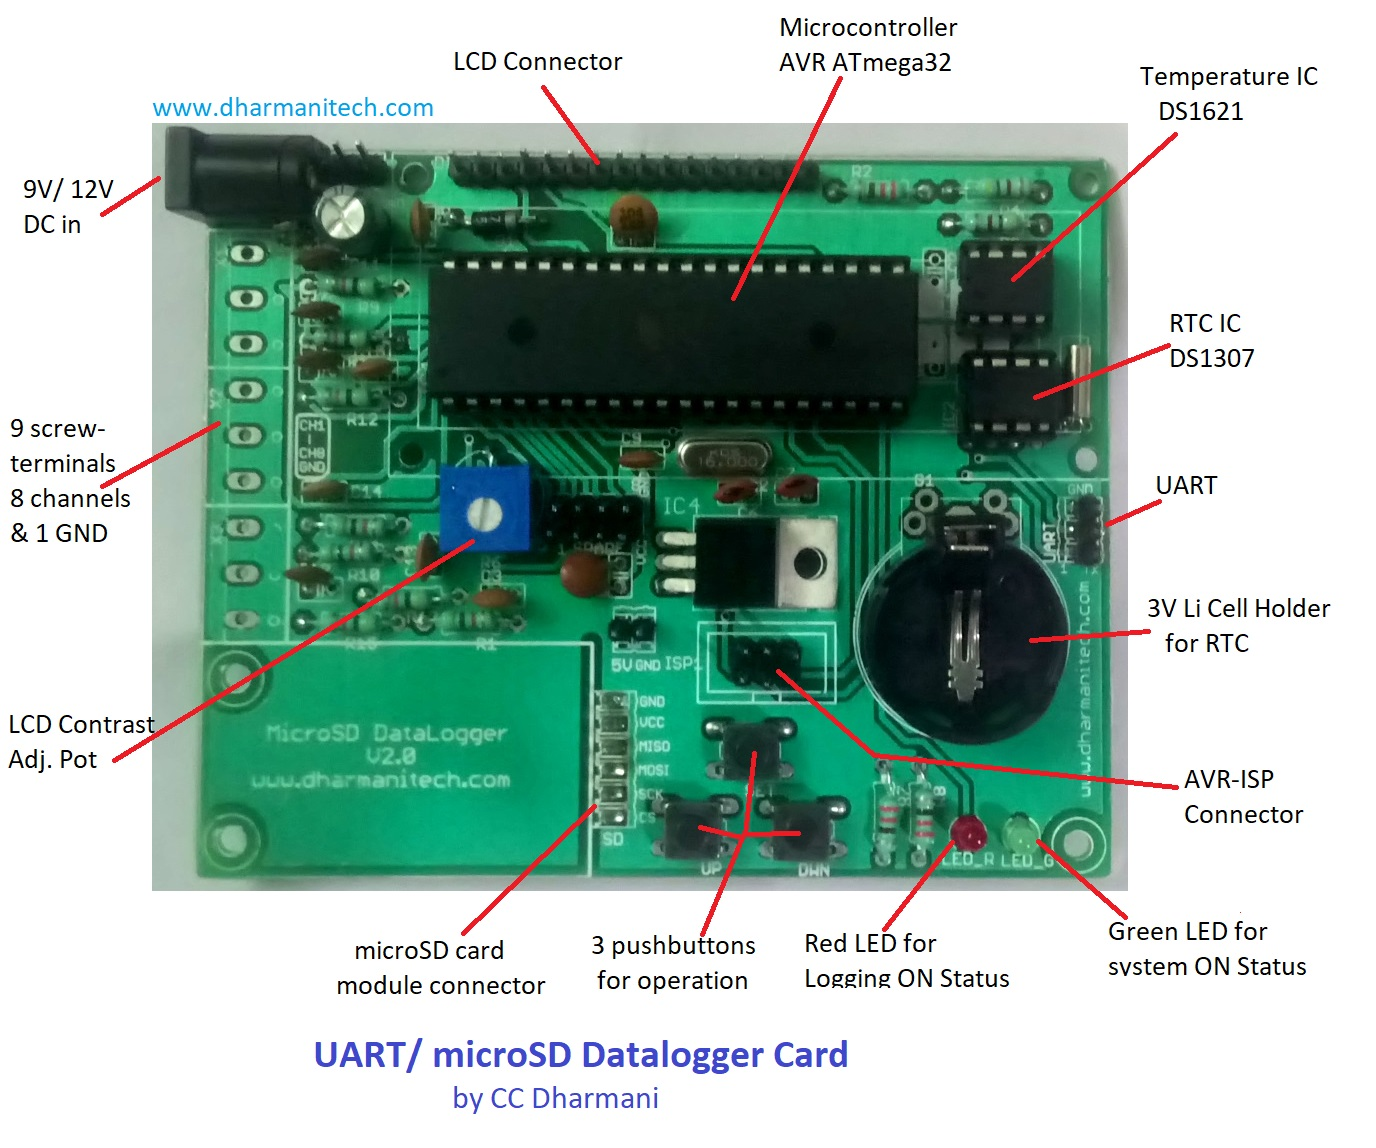 Design with Microcontrollers